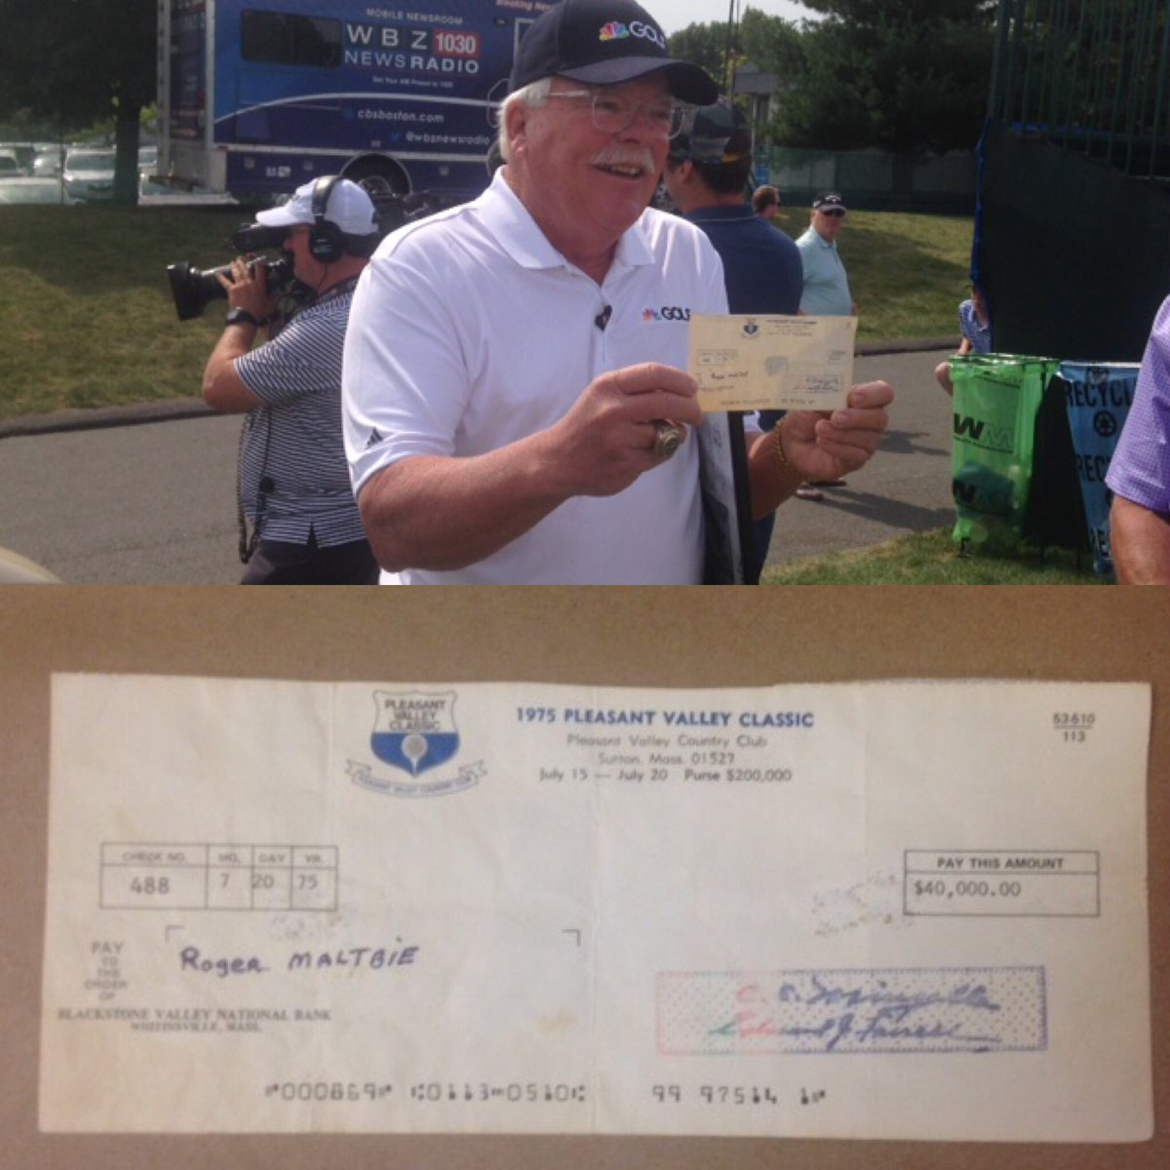 When Roger Maltbie lost this $40K winner's check in 1975, it was presumably gone forever.  Fast-forward to today!